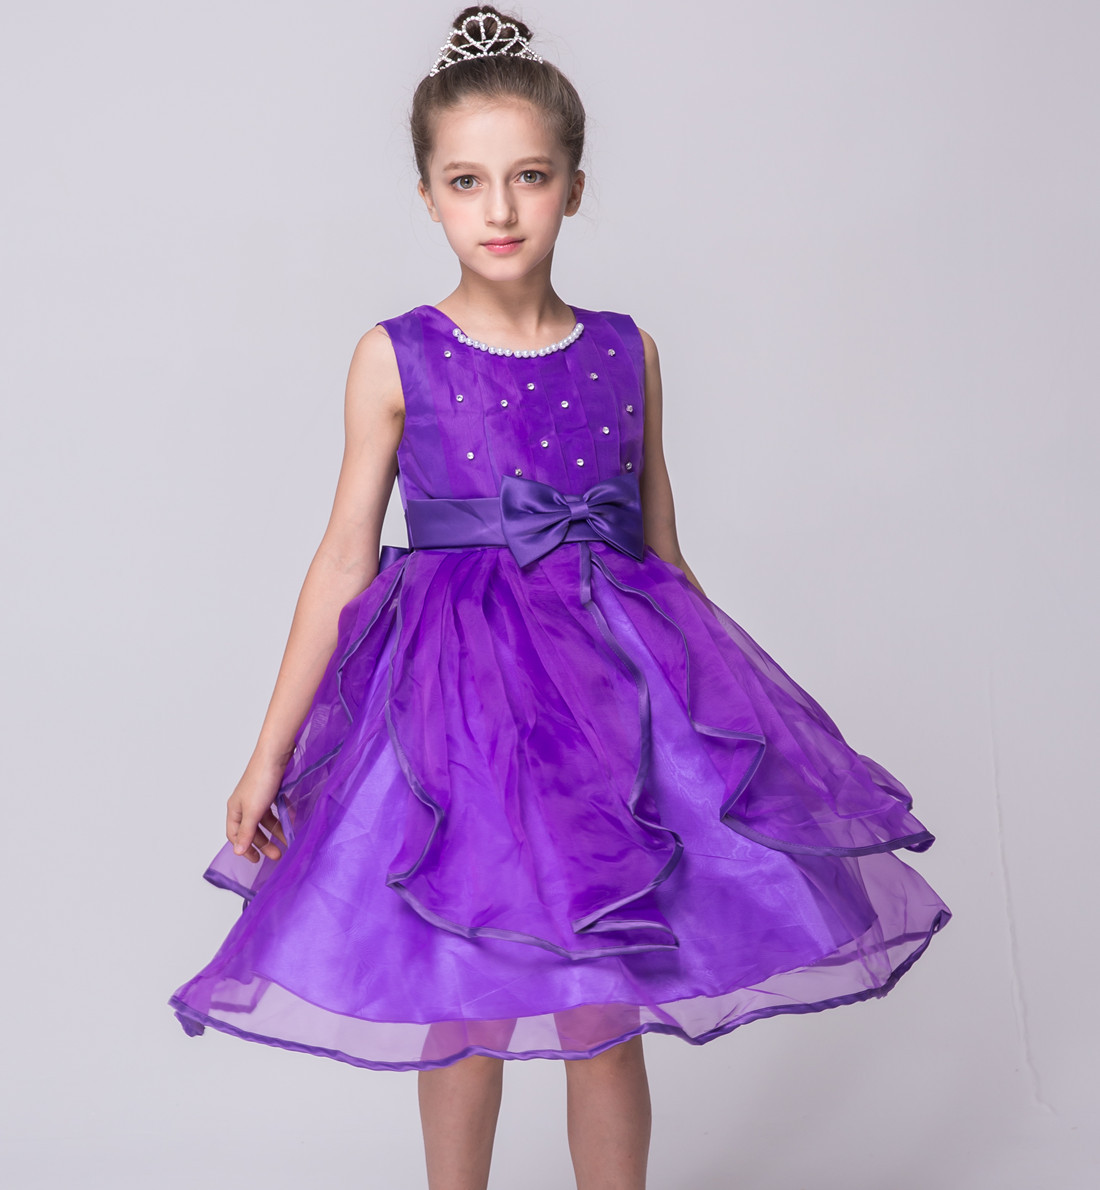 Party Dresses For 13 Year Olds Dress Yp